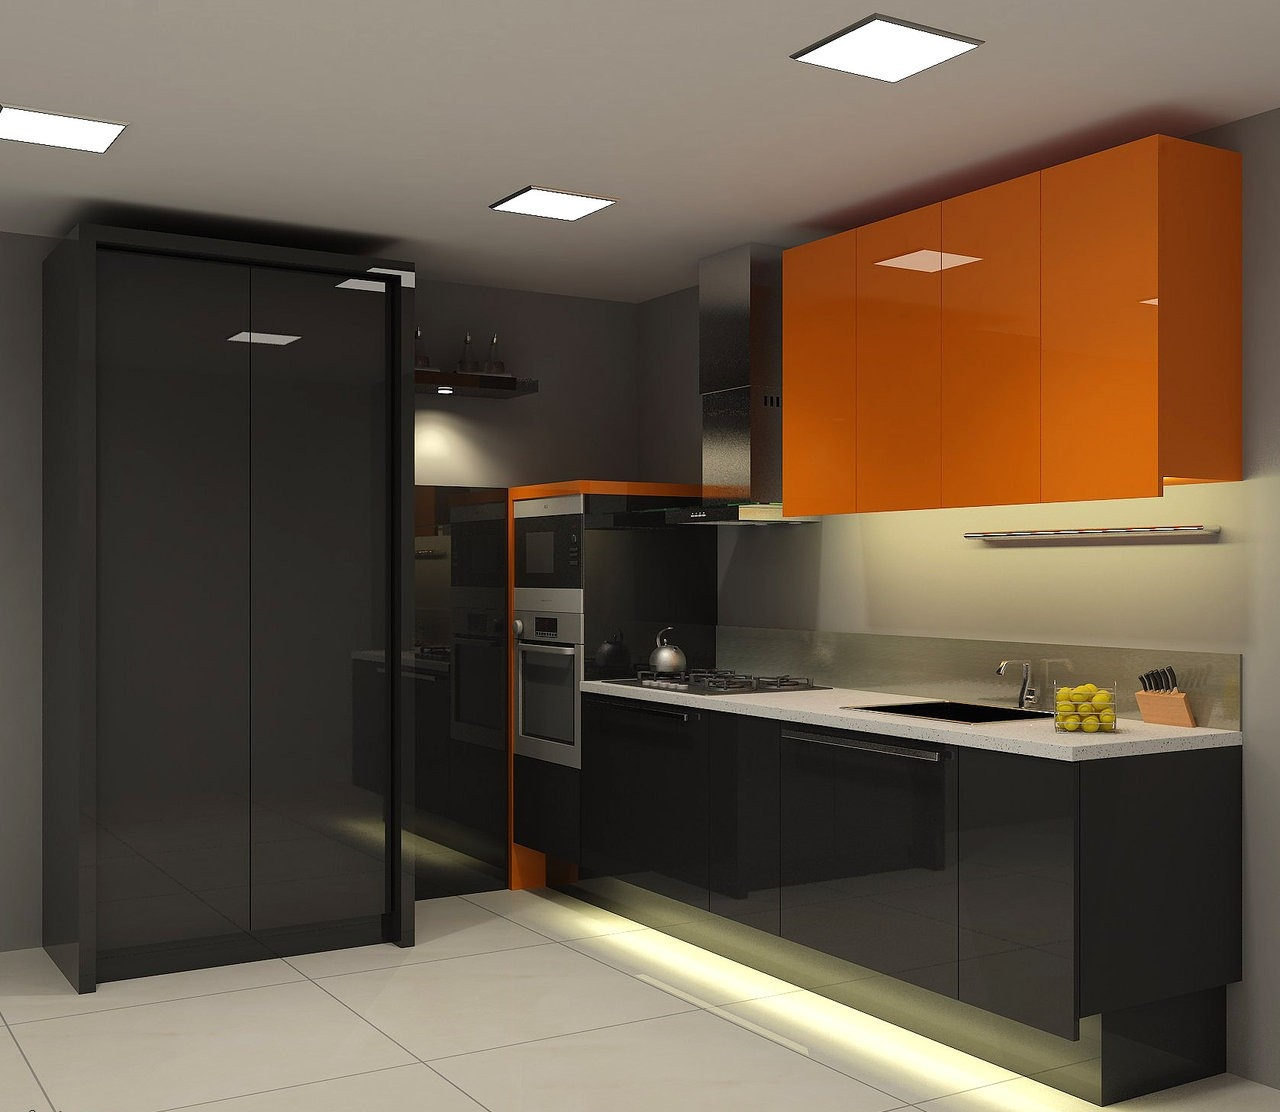 The Best Small Kitchen Design Ideas For Your Tiny Space: مطابخ 2014 الفخمة